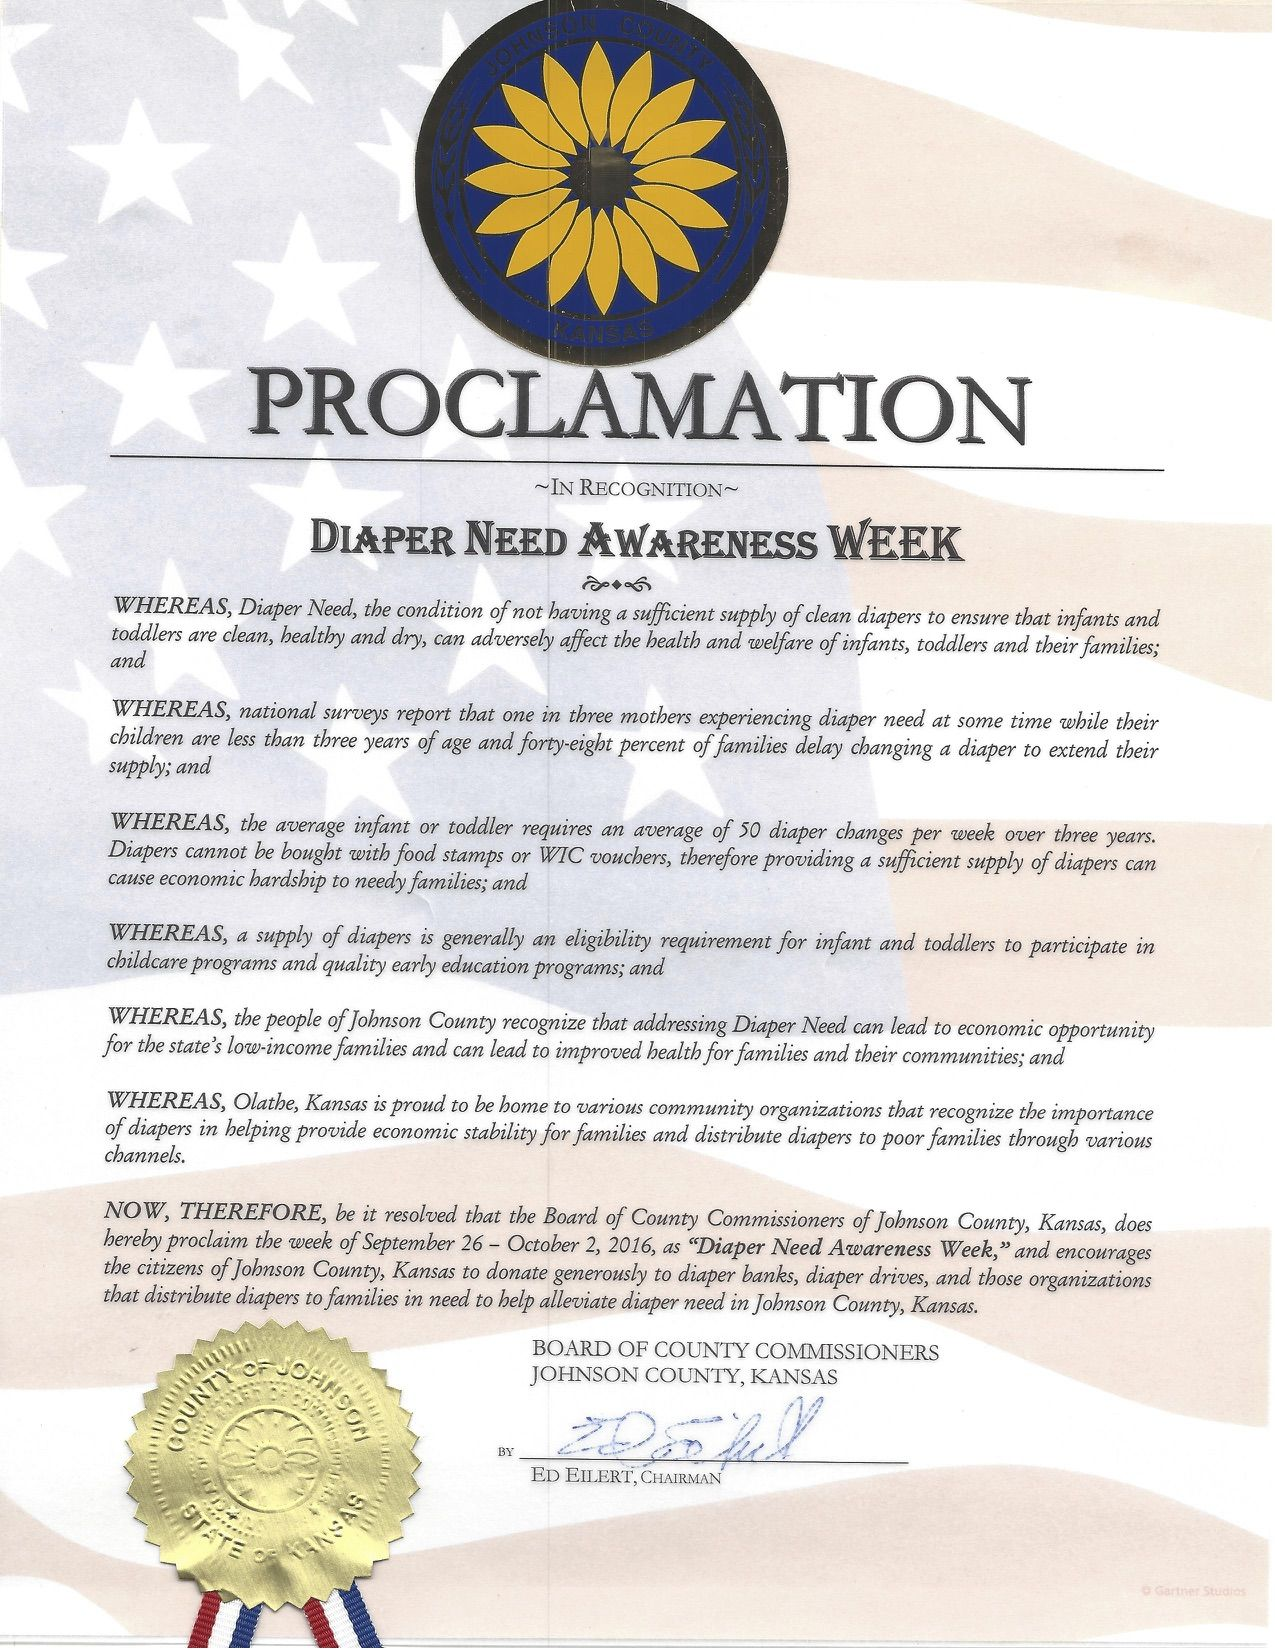 Johnson County, KS- Chairman proclamation recognizing Diaper Need Awareness Week (Sep. 26-Oct. 2, 2016) #DiaperNeed Diaperneed.org 16h